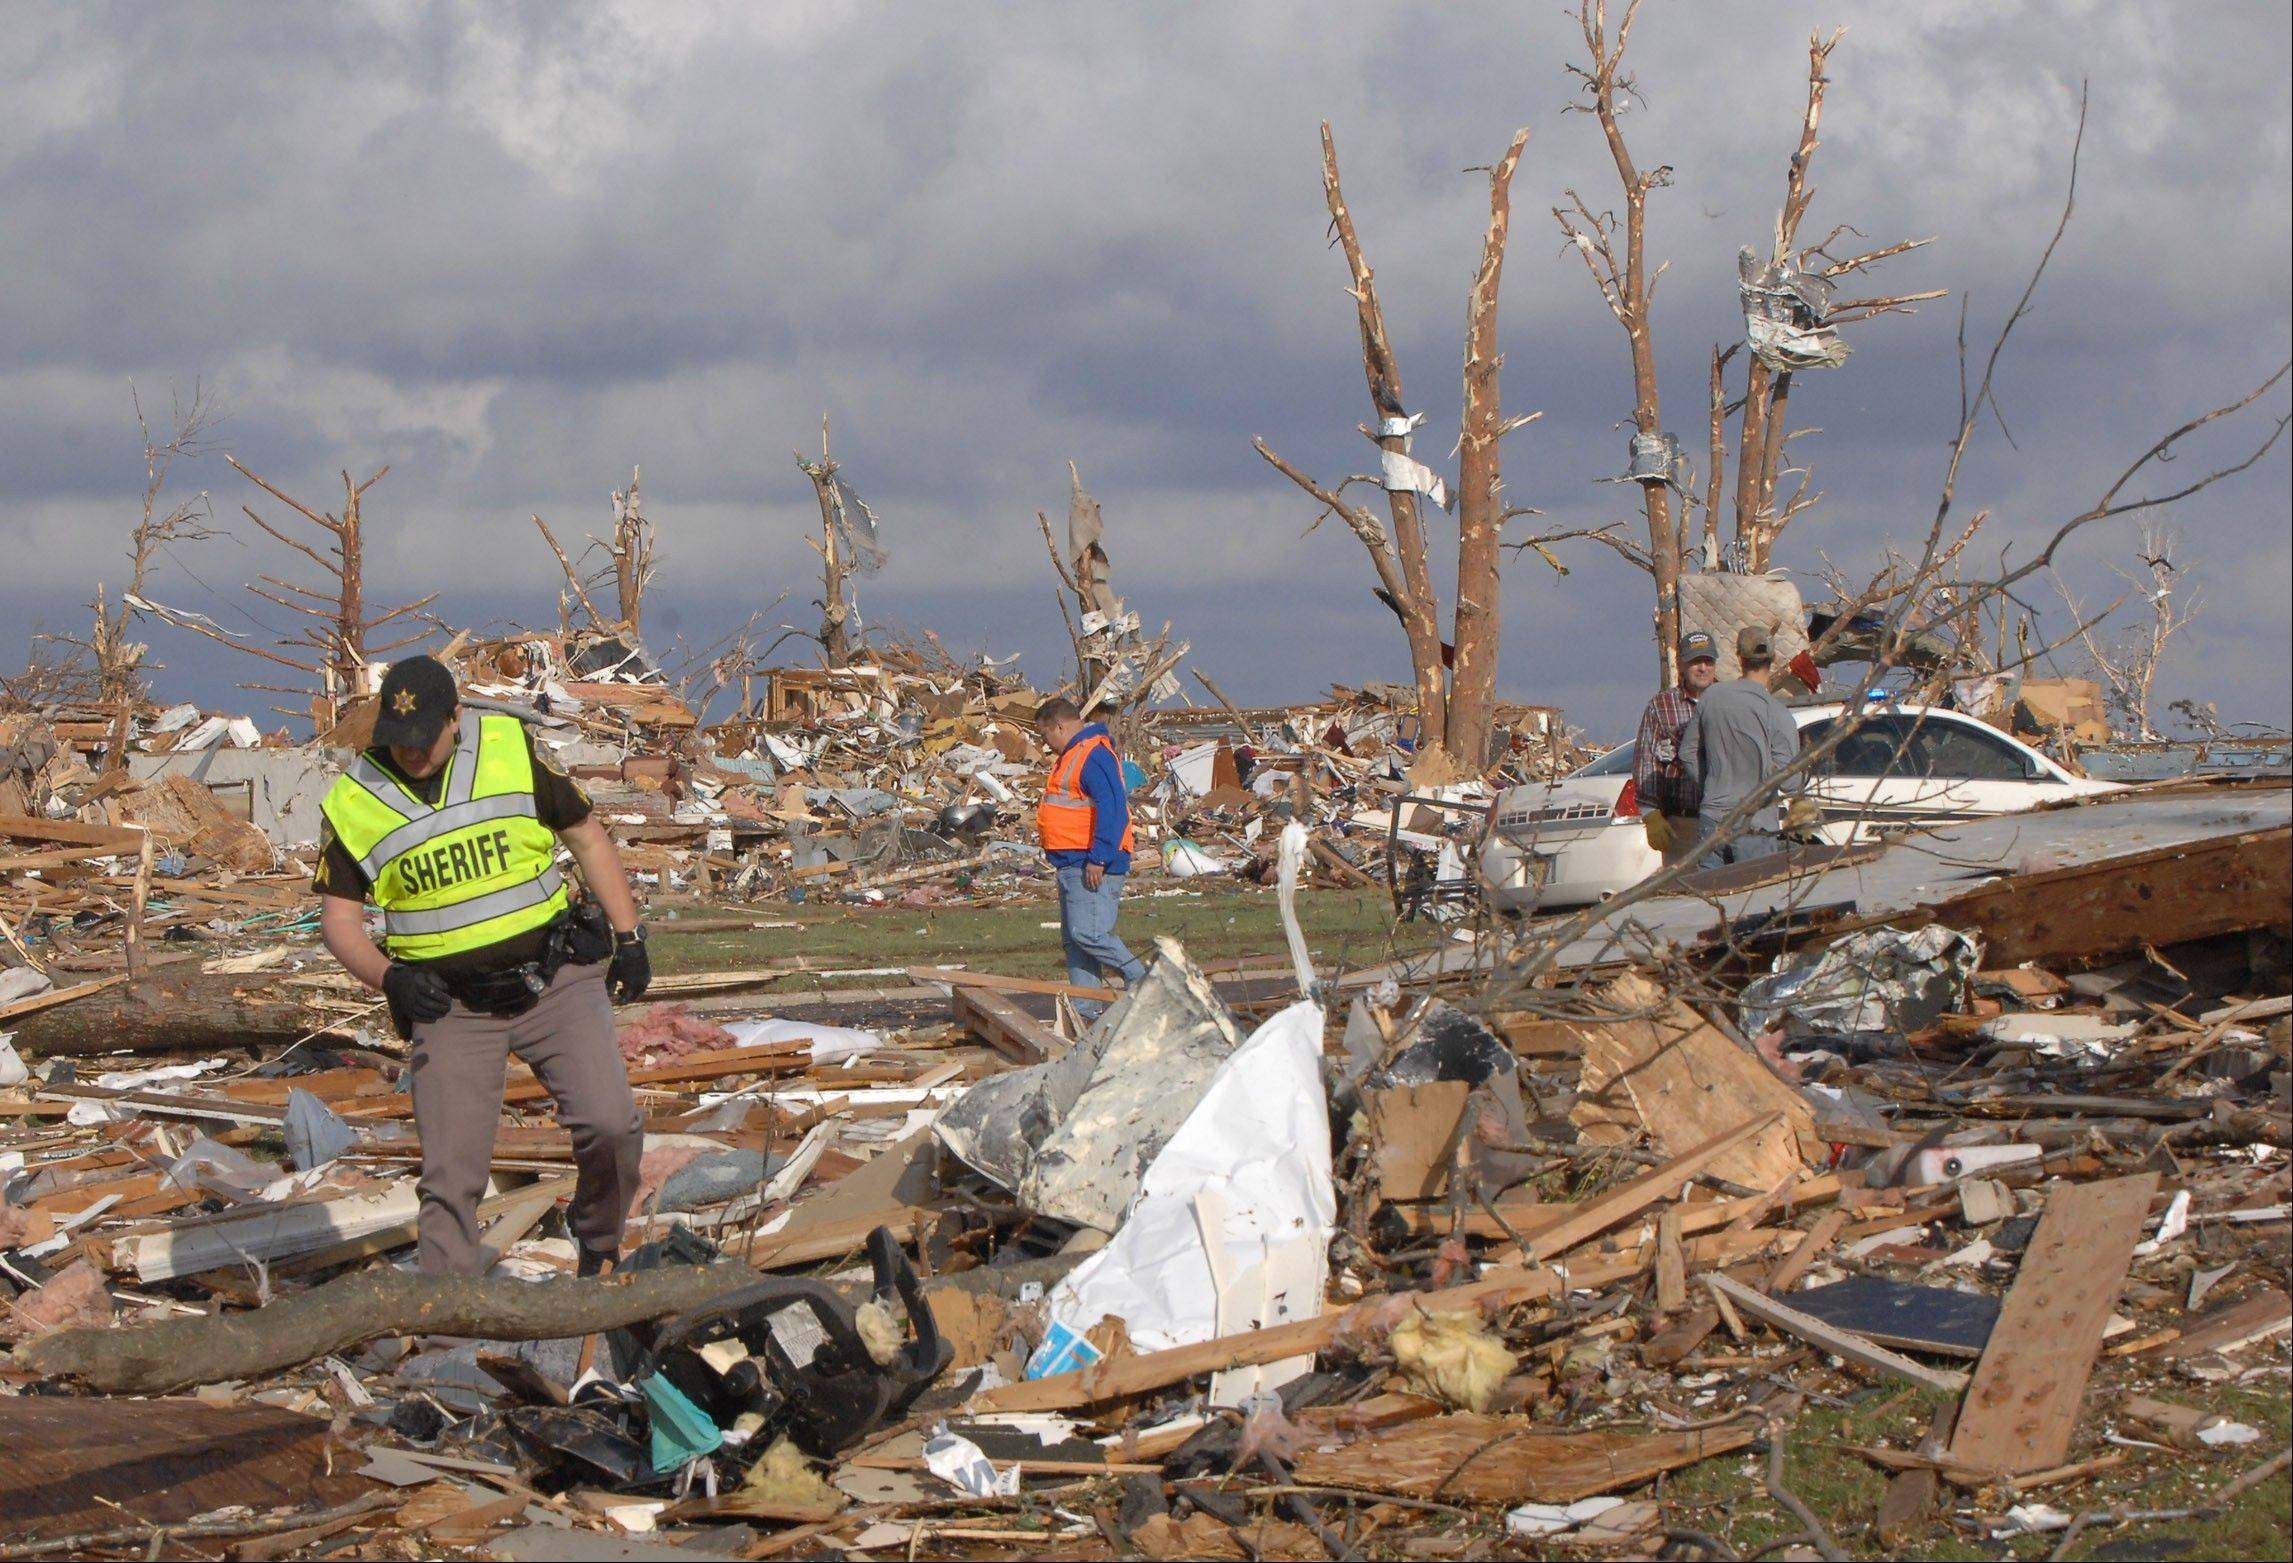 A deputy sergeant with the Tazewell County sheriff's office walks gingerly through debris after a tornado ravaged downstate Washington in November.